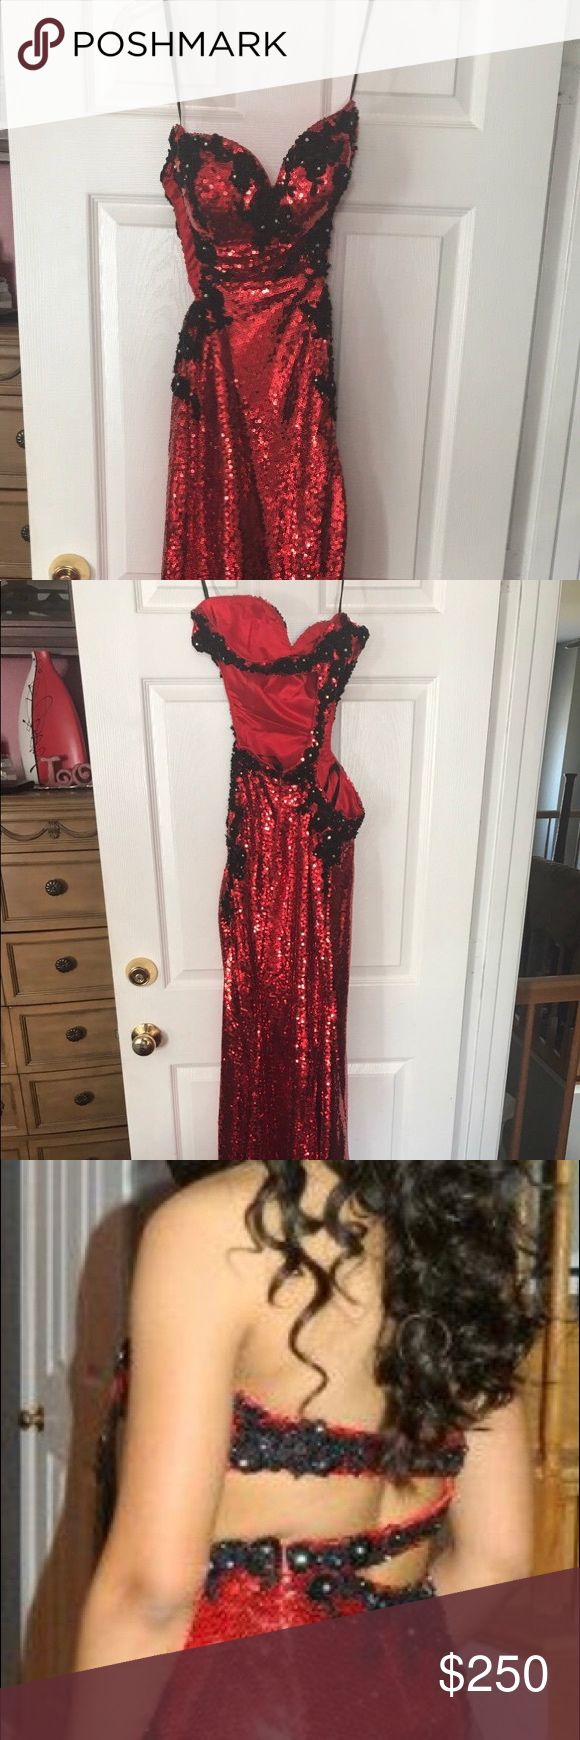 Prom dress, gala Gown, sequin dress, red, black Red, black, sequin, prom dress, ballroom gown Dresses Strapless